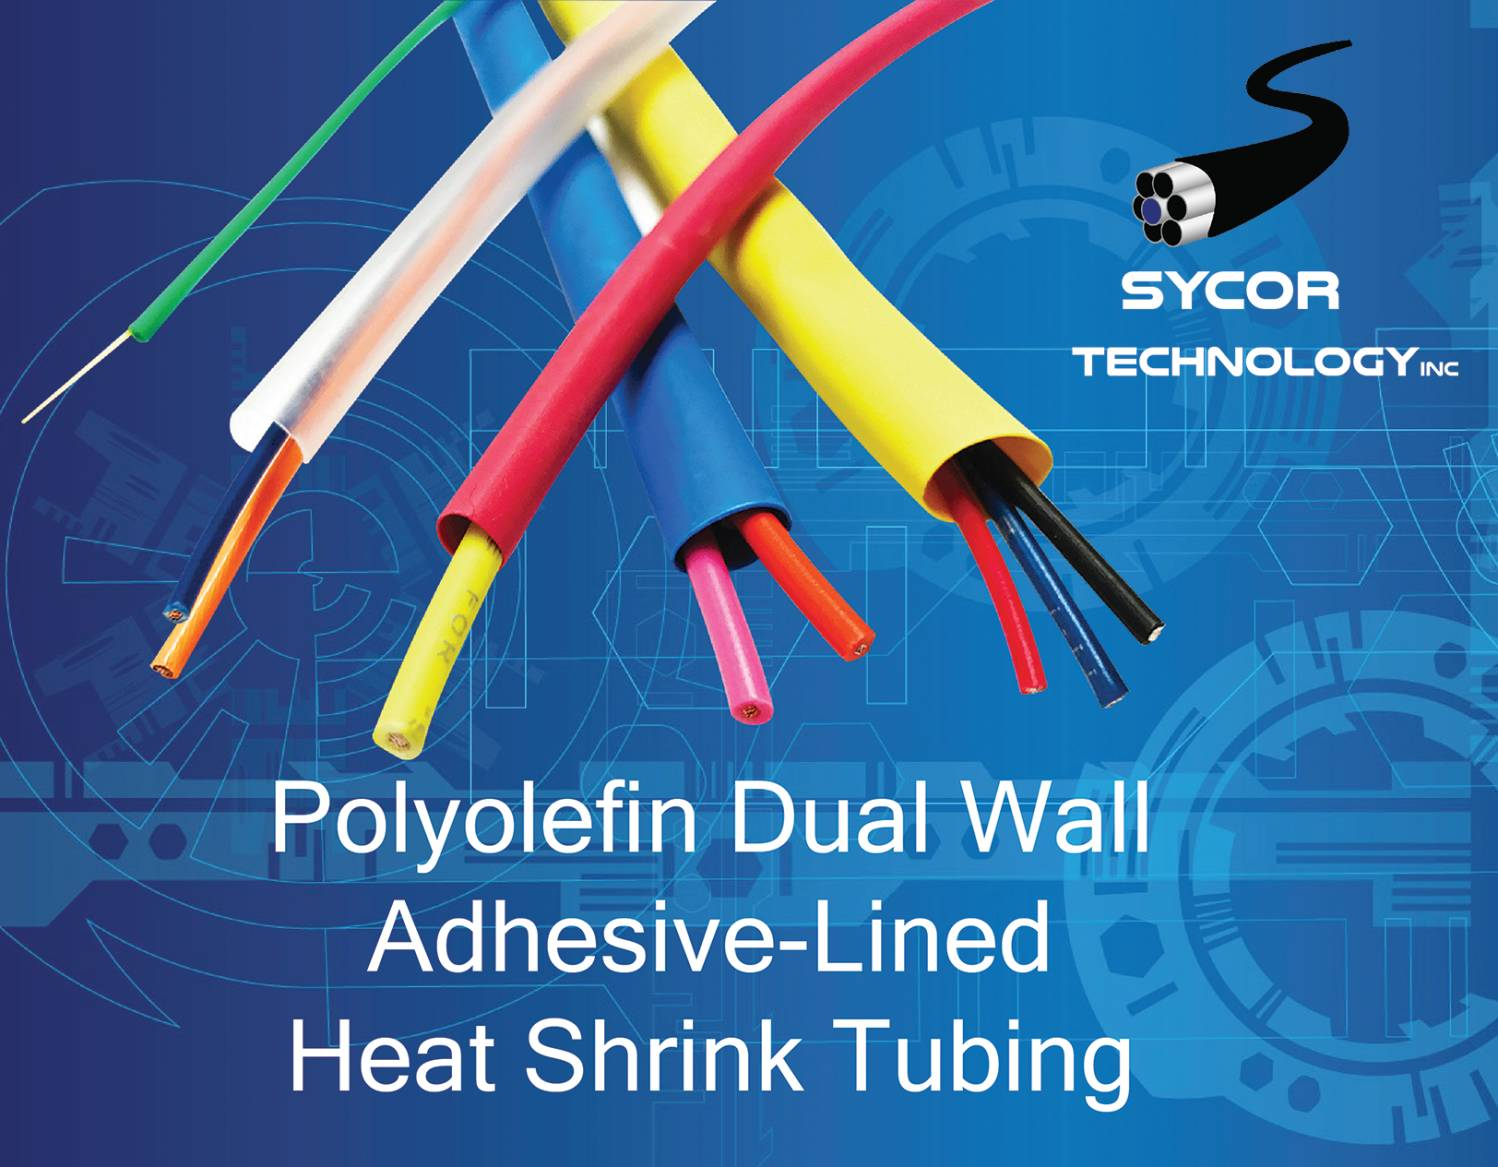 PO Dual Wall adhesive-lined Heat Shrink Tubing